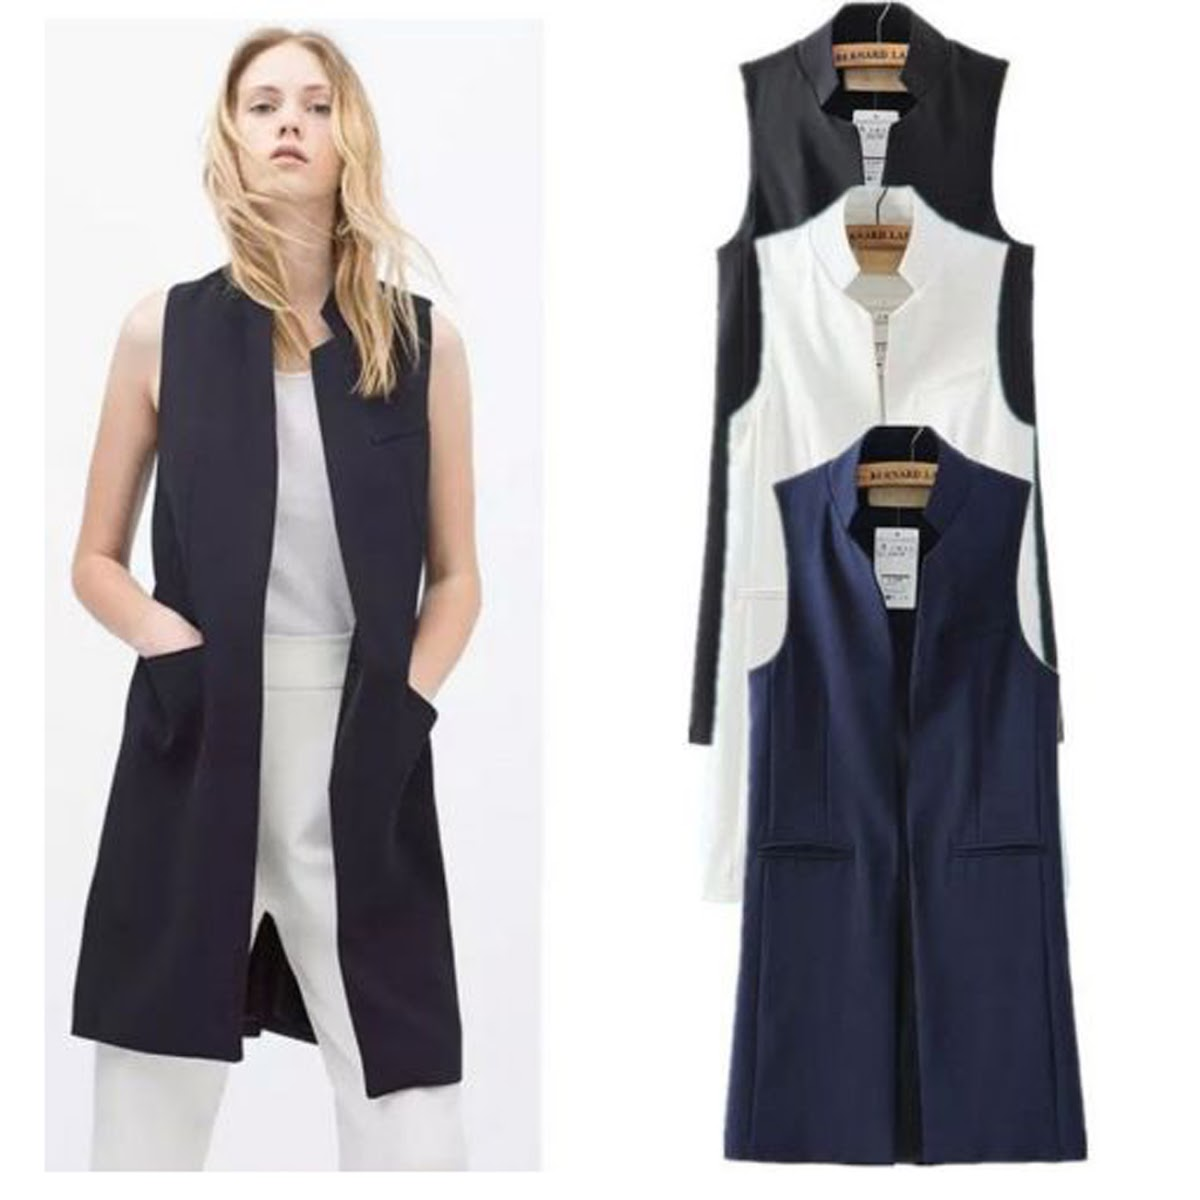 676b166b1f132a 2019 Women S Mandarin Collar Open Front Long Vest Waistcoat Cardigan Blazer  Sleeveless Jacket Outfit Women Long Business Suit Vest From Yukime